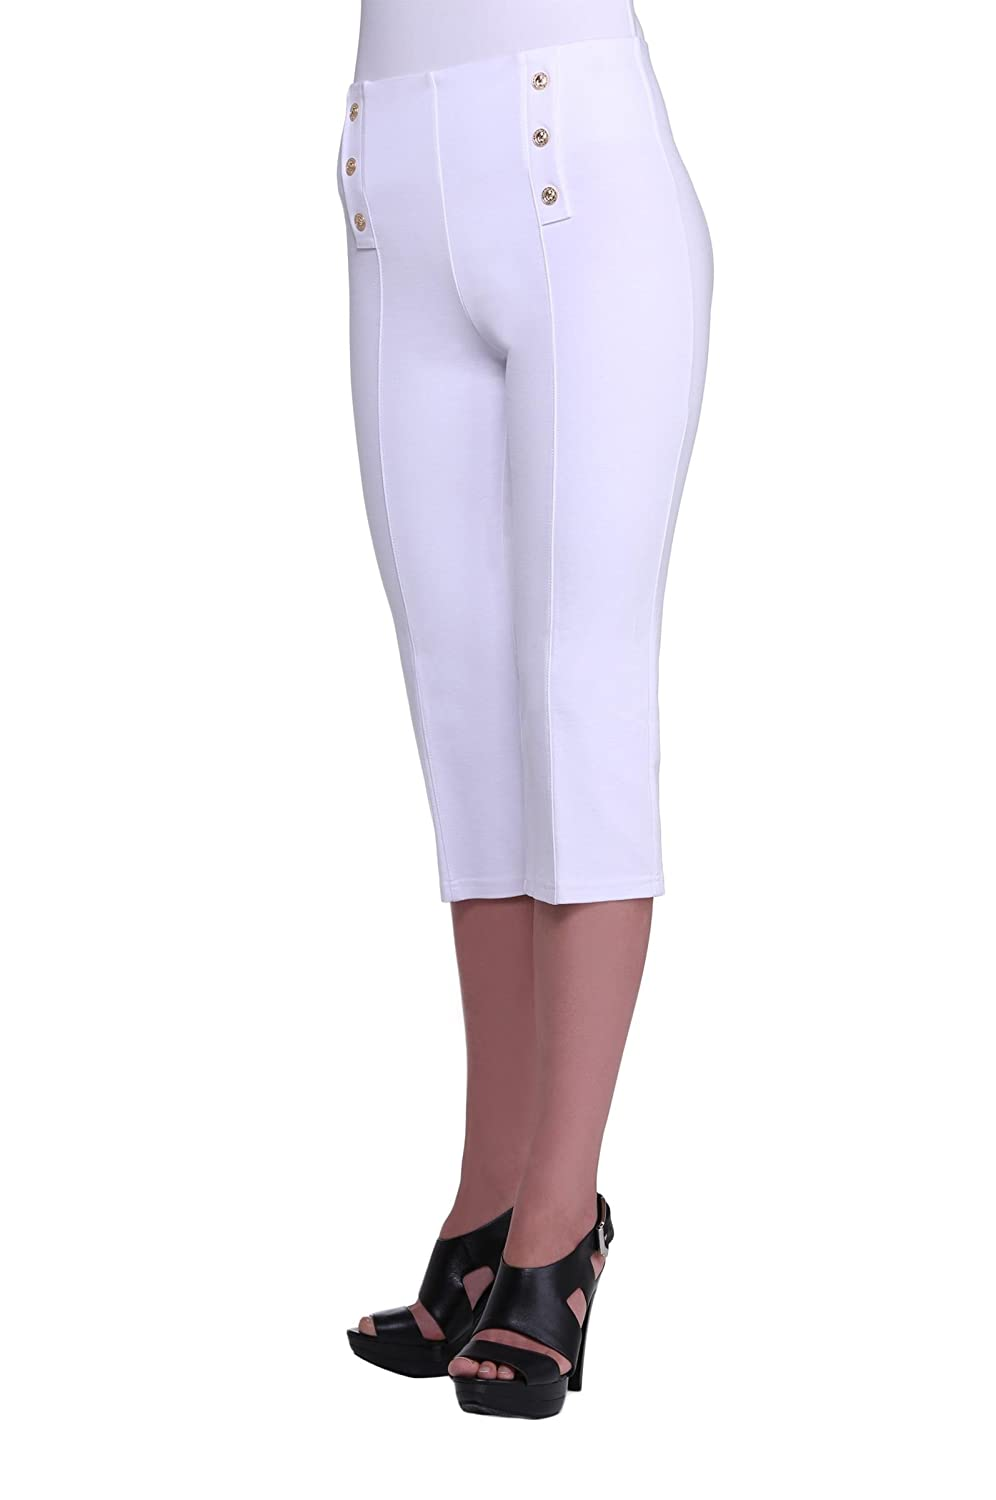 Petite Women's Nautical Slimming Contour White Capri Pants